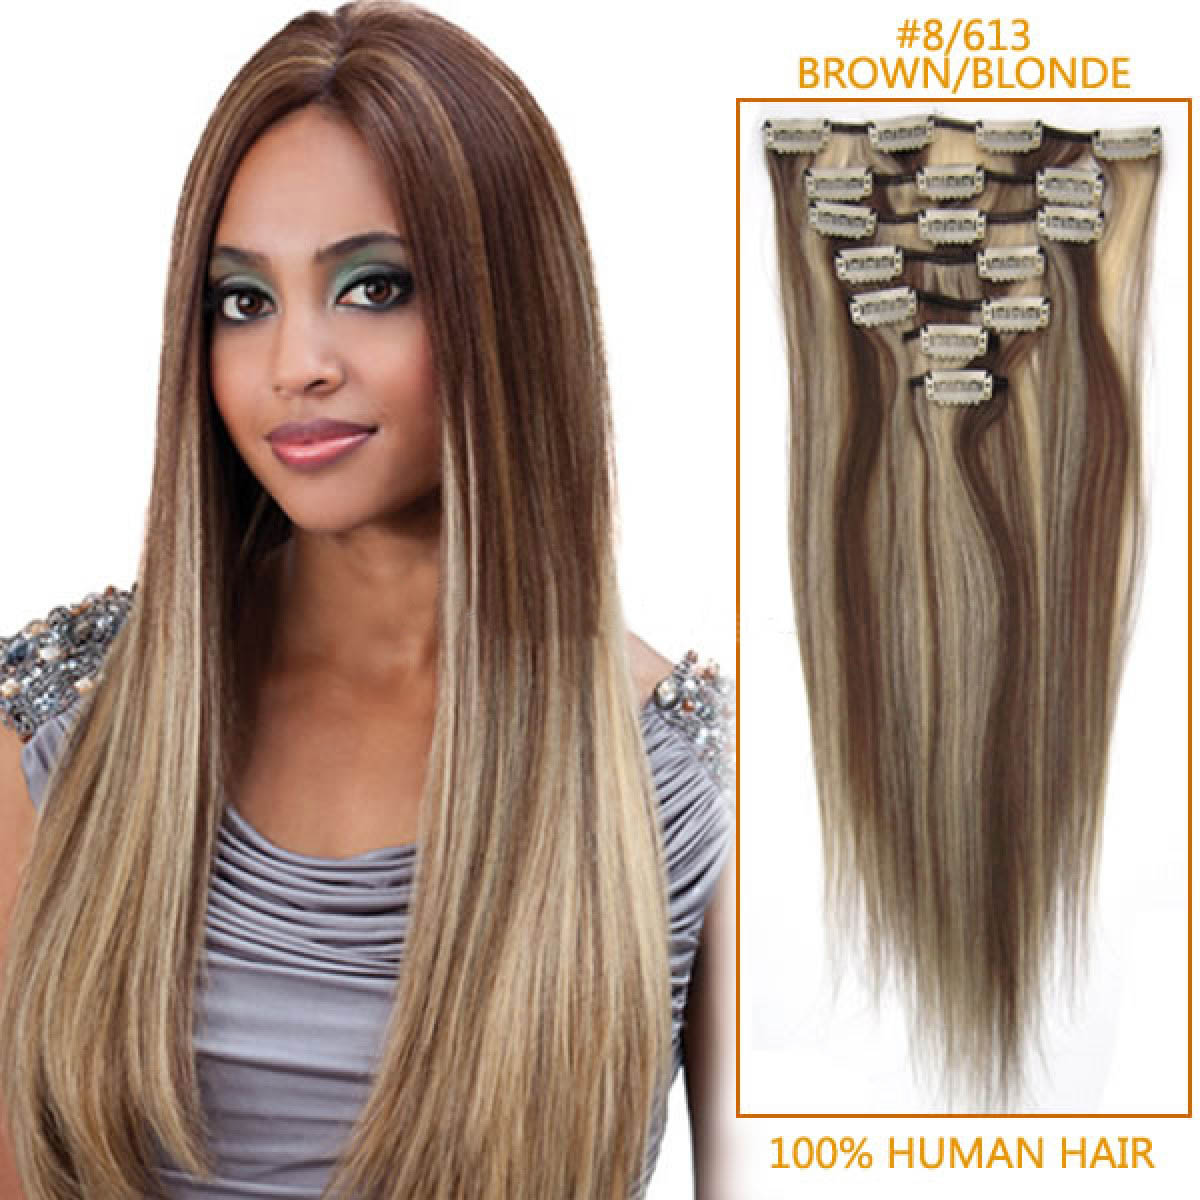 Inch 8613 brownblonde clip in remy human hair extensions 9pcs 22 inch 8613 brownblonde clip in remy human hair extensions 9pcs pmusecretfo Choice Image